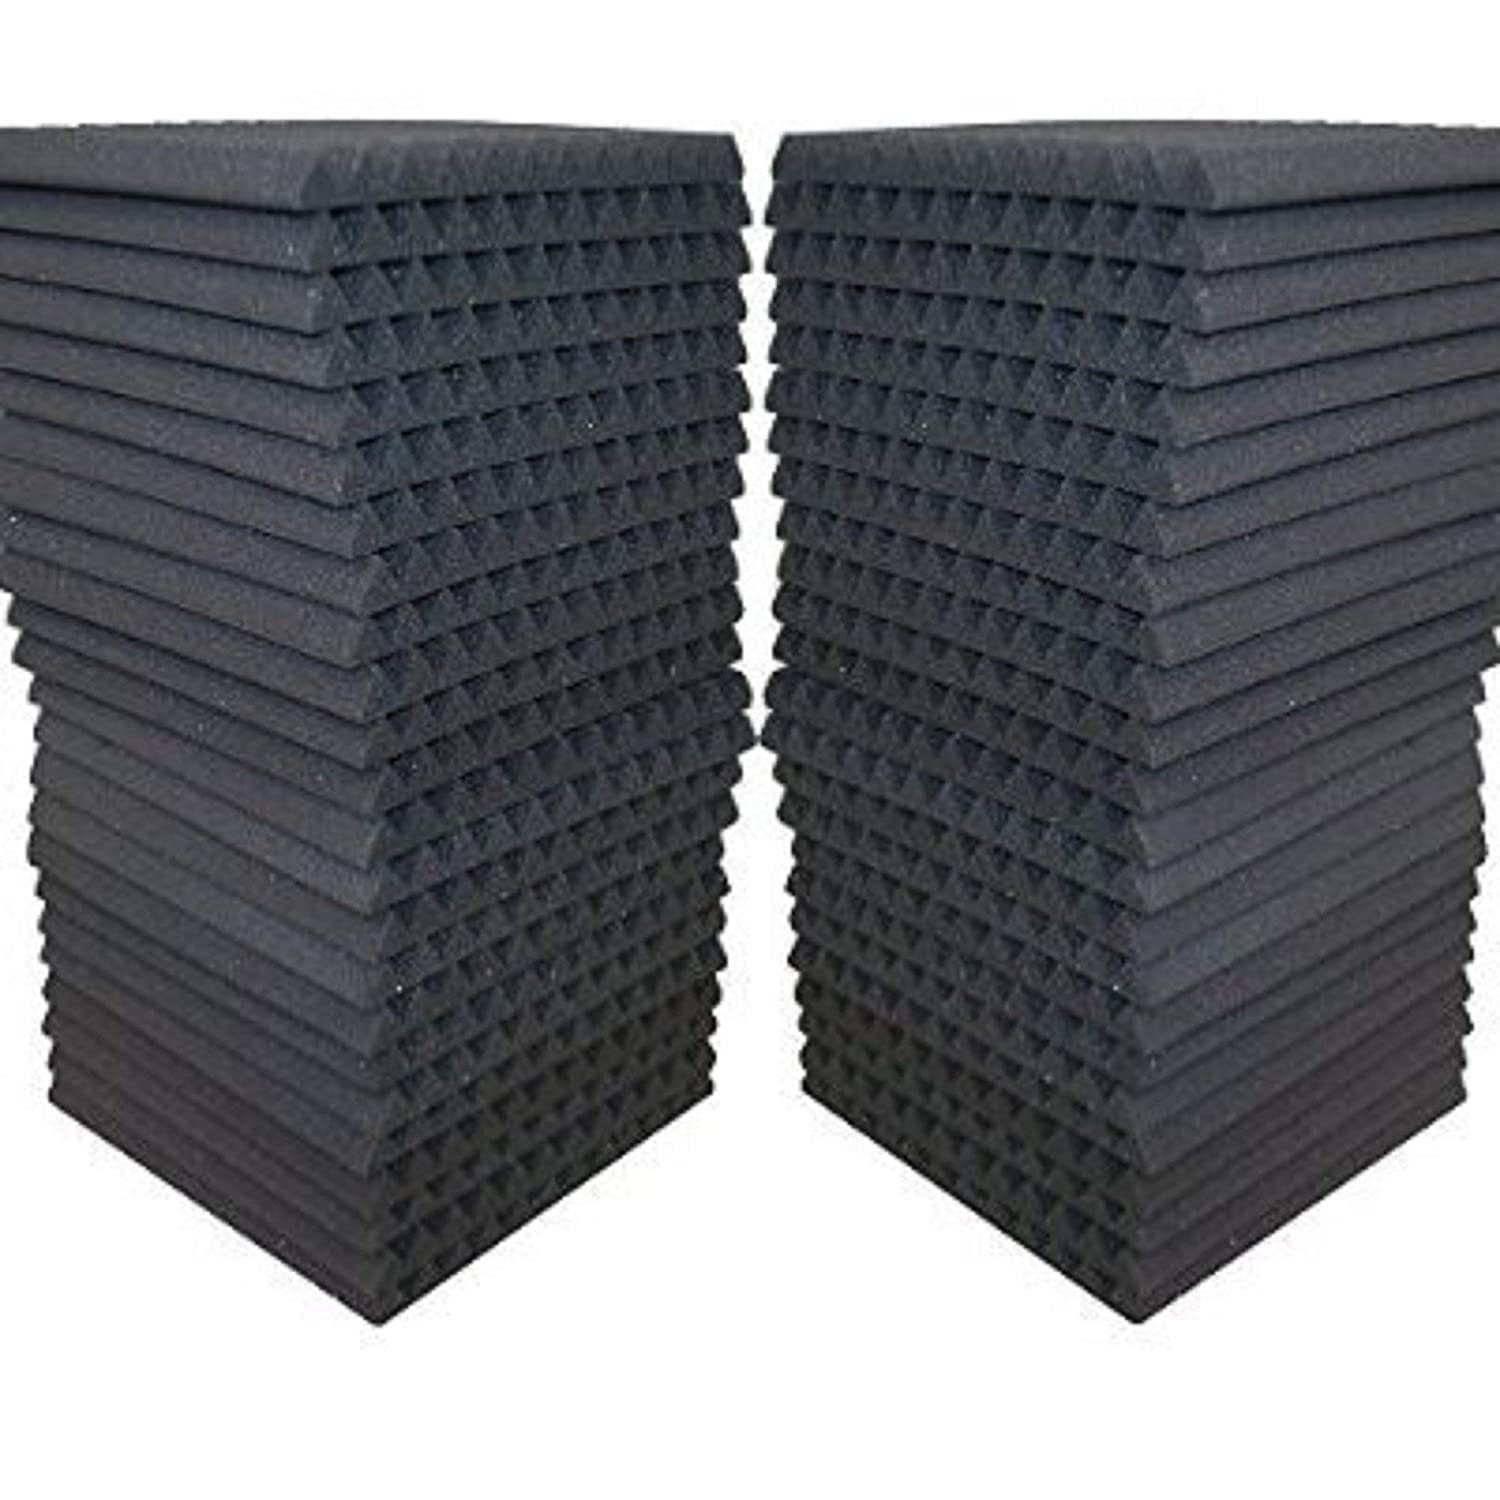 FoamEngineering Acoustic Panels Studio Soundproofing Foam Wedge Tiles, 12 X 12-Inches, 48 Pack AK TRADING CO. w1121248